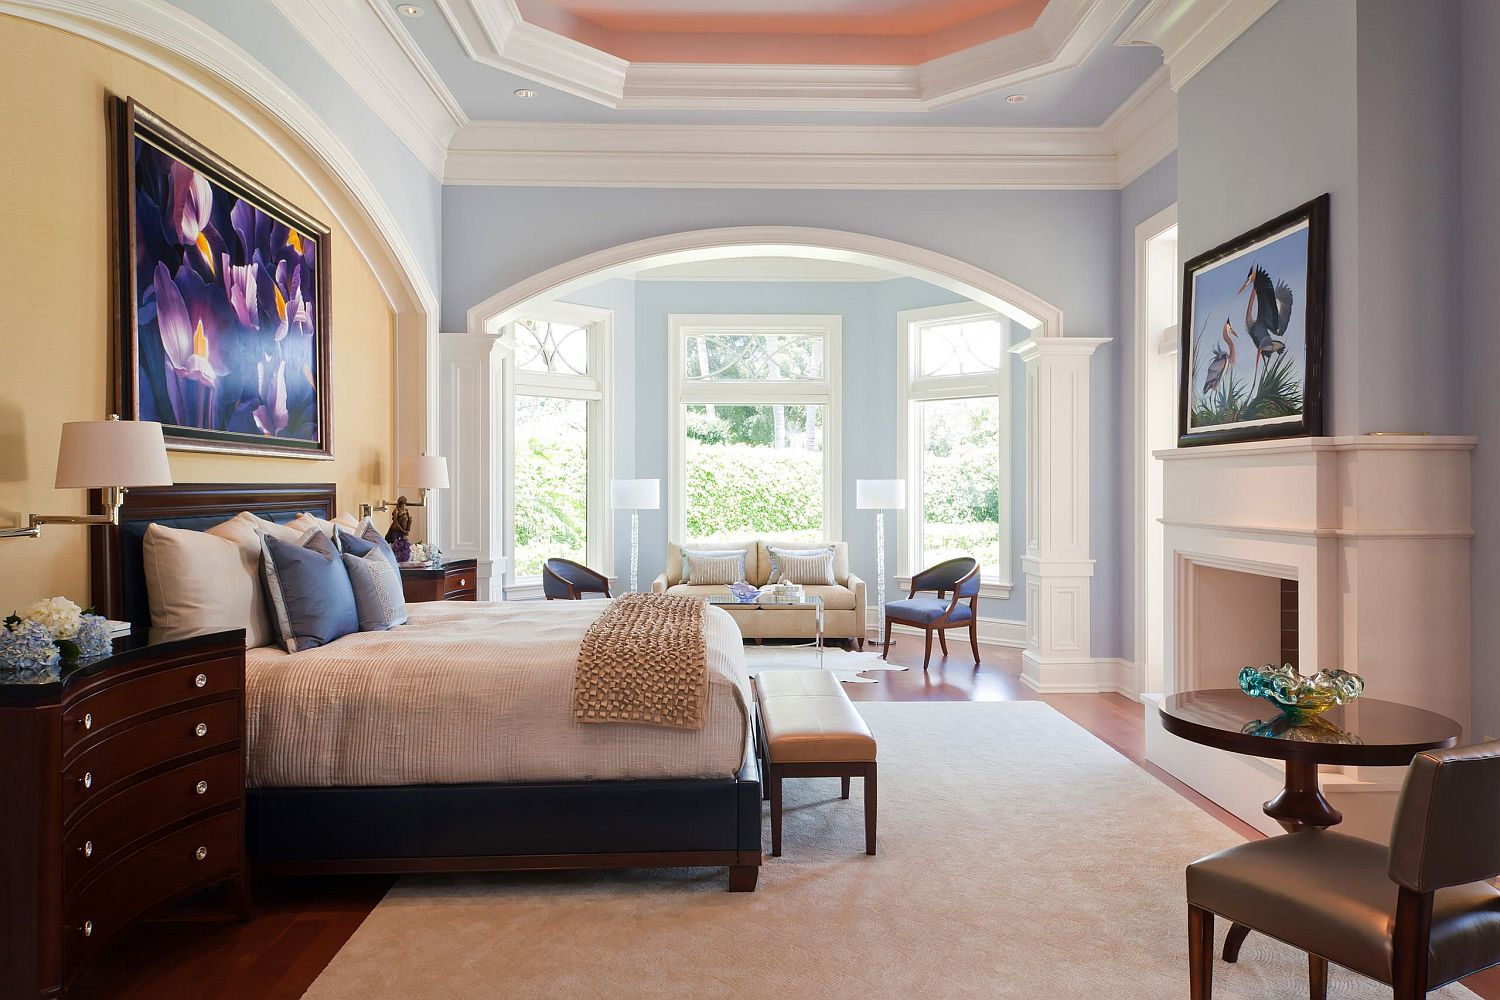 Decorating-the-wall-above-headboard-and-the-fireplace-mantle-with-wall-art-that-is-eye-catching